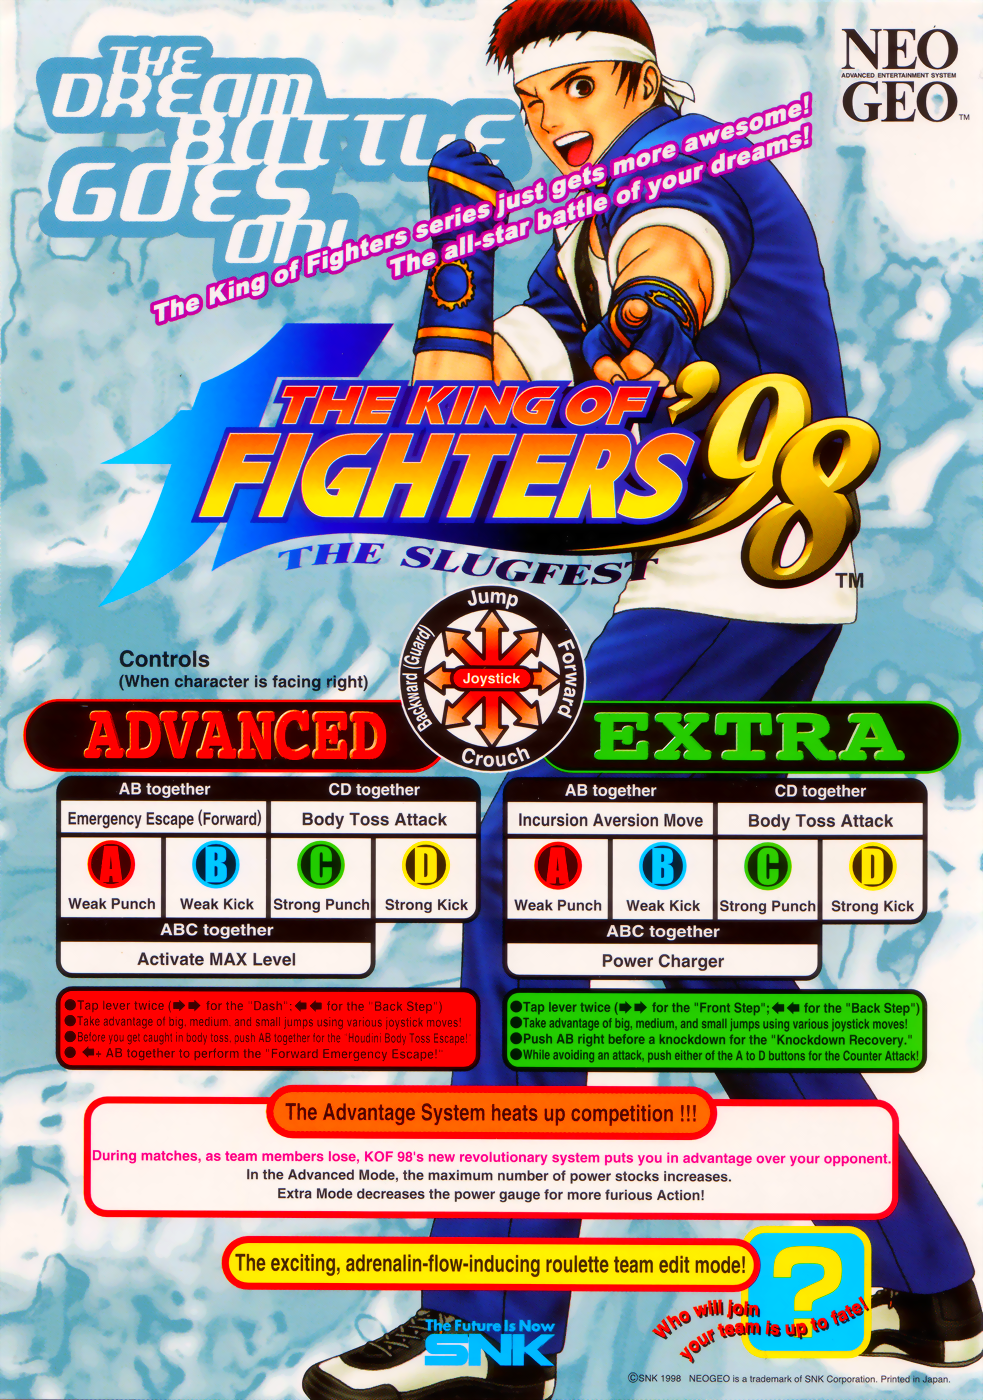 The King of Fighters '98 - The Slugfest / King of Fighters '98 - Dream Match Never Ends (Korean board, set 1) flyer